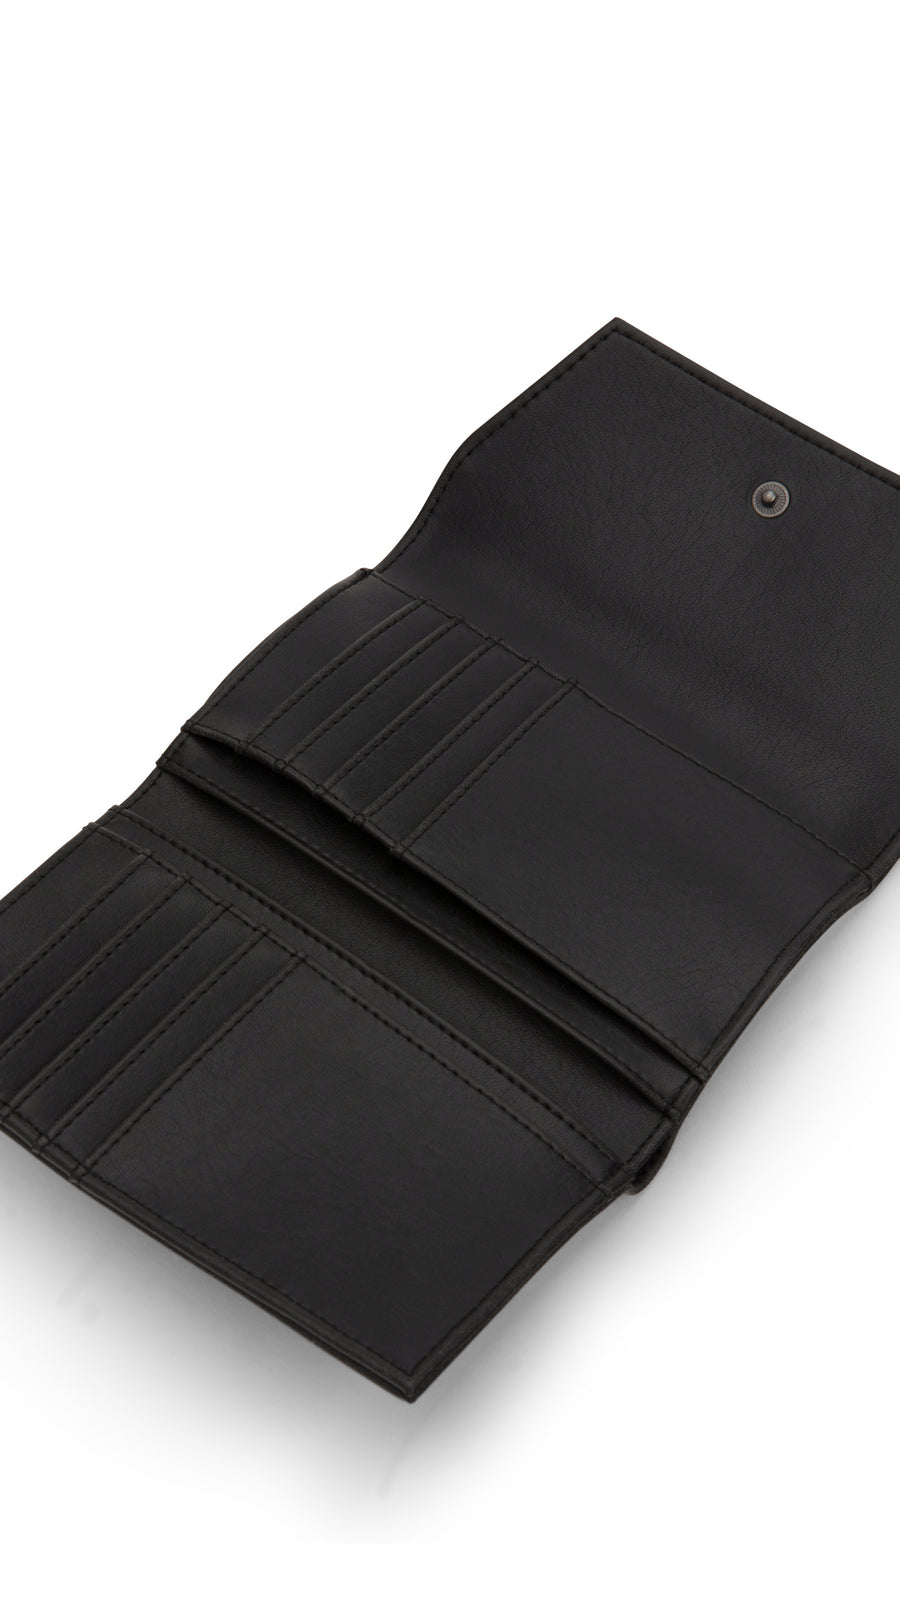 Black Vera Small Wallet by Matt & Nat